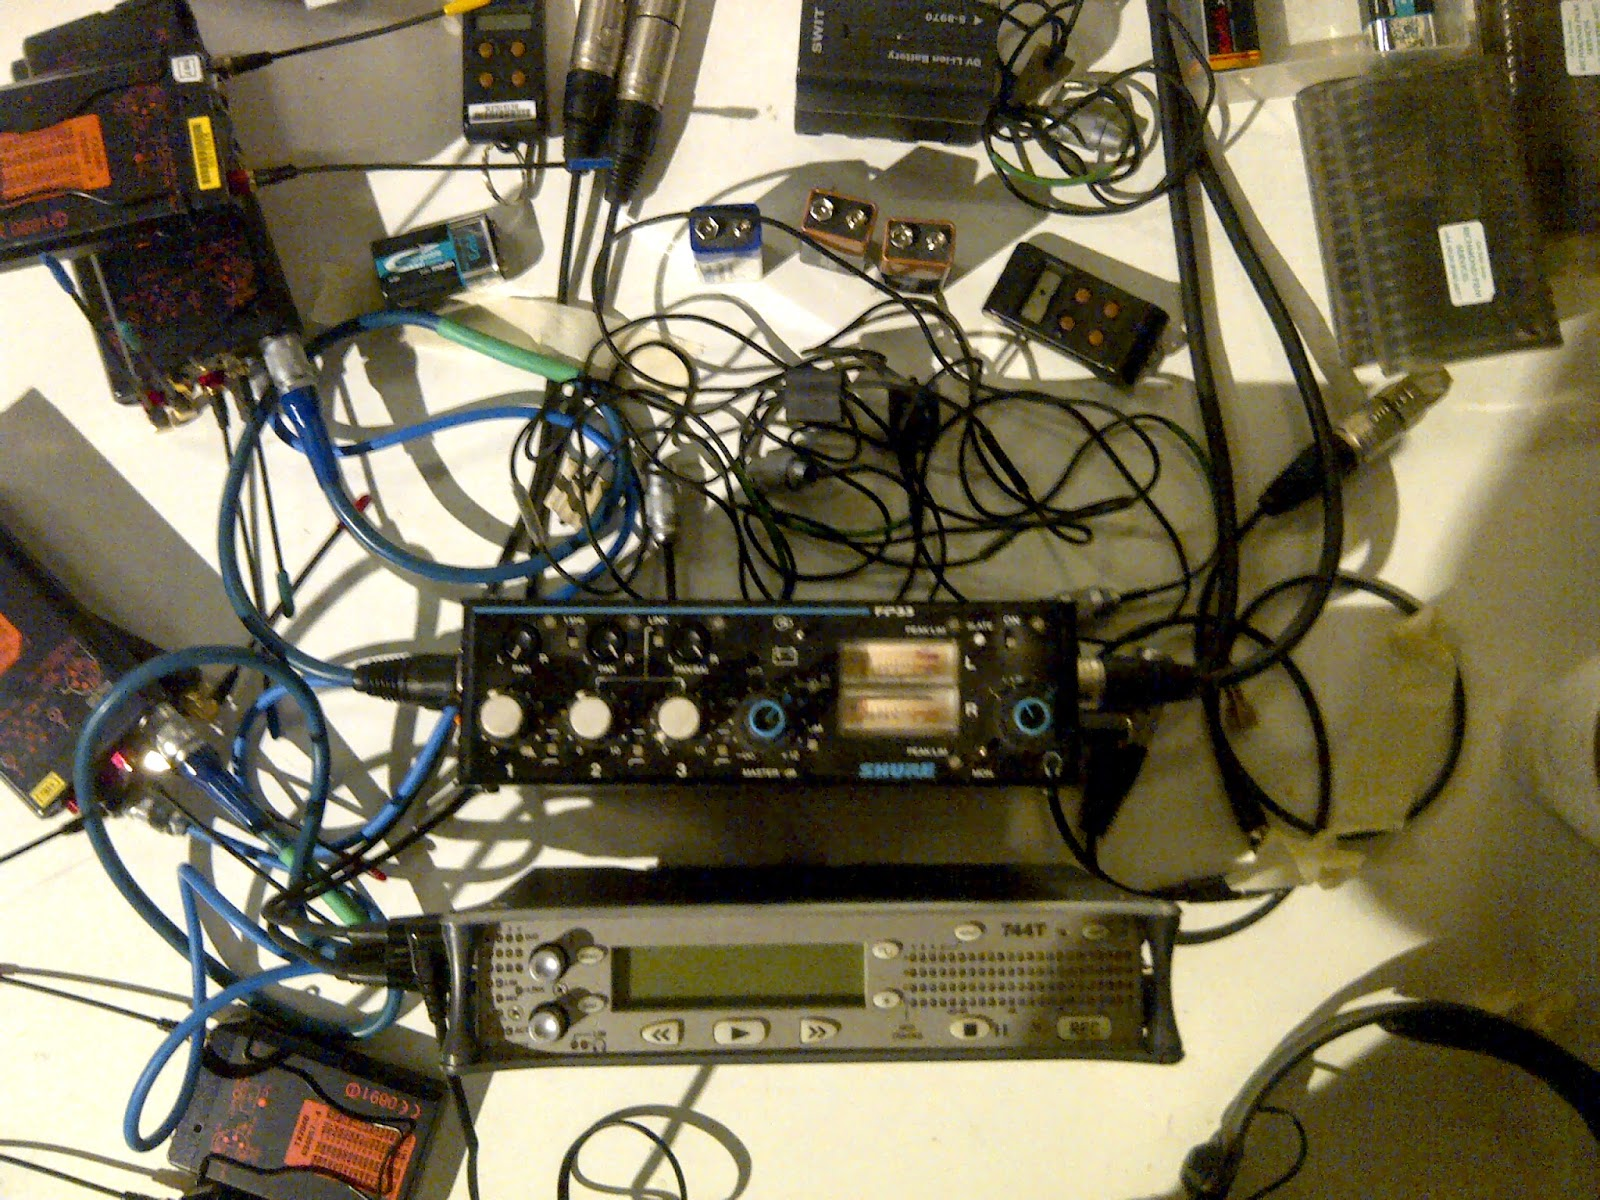 744t Sound devices